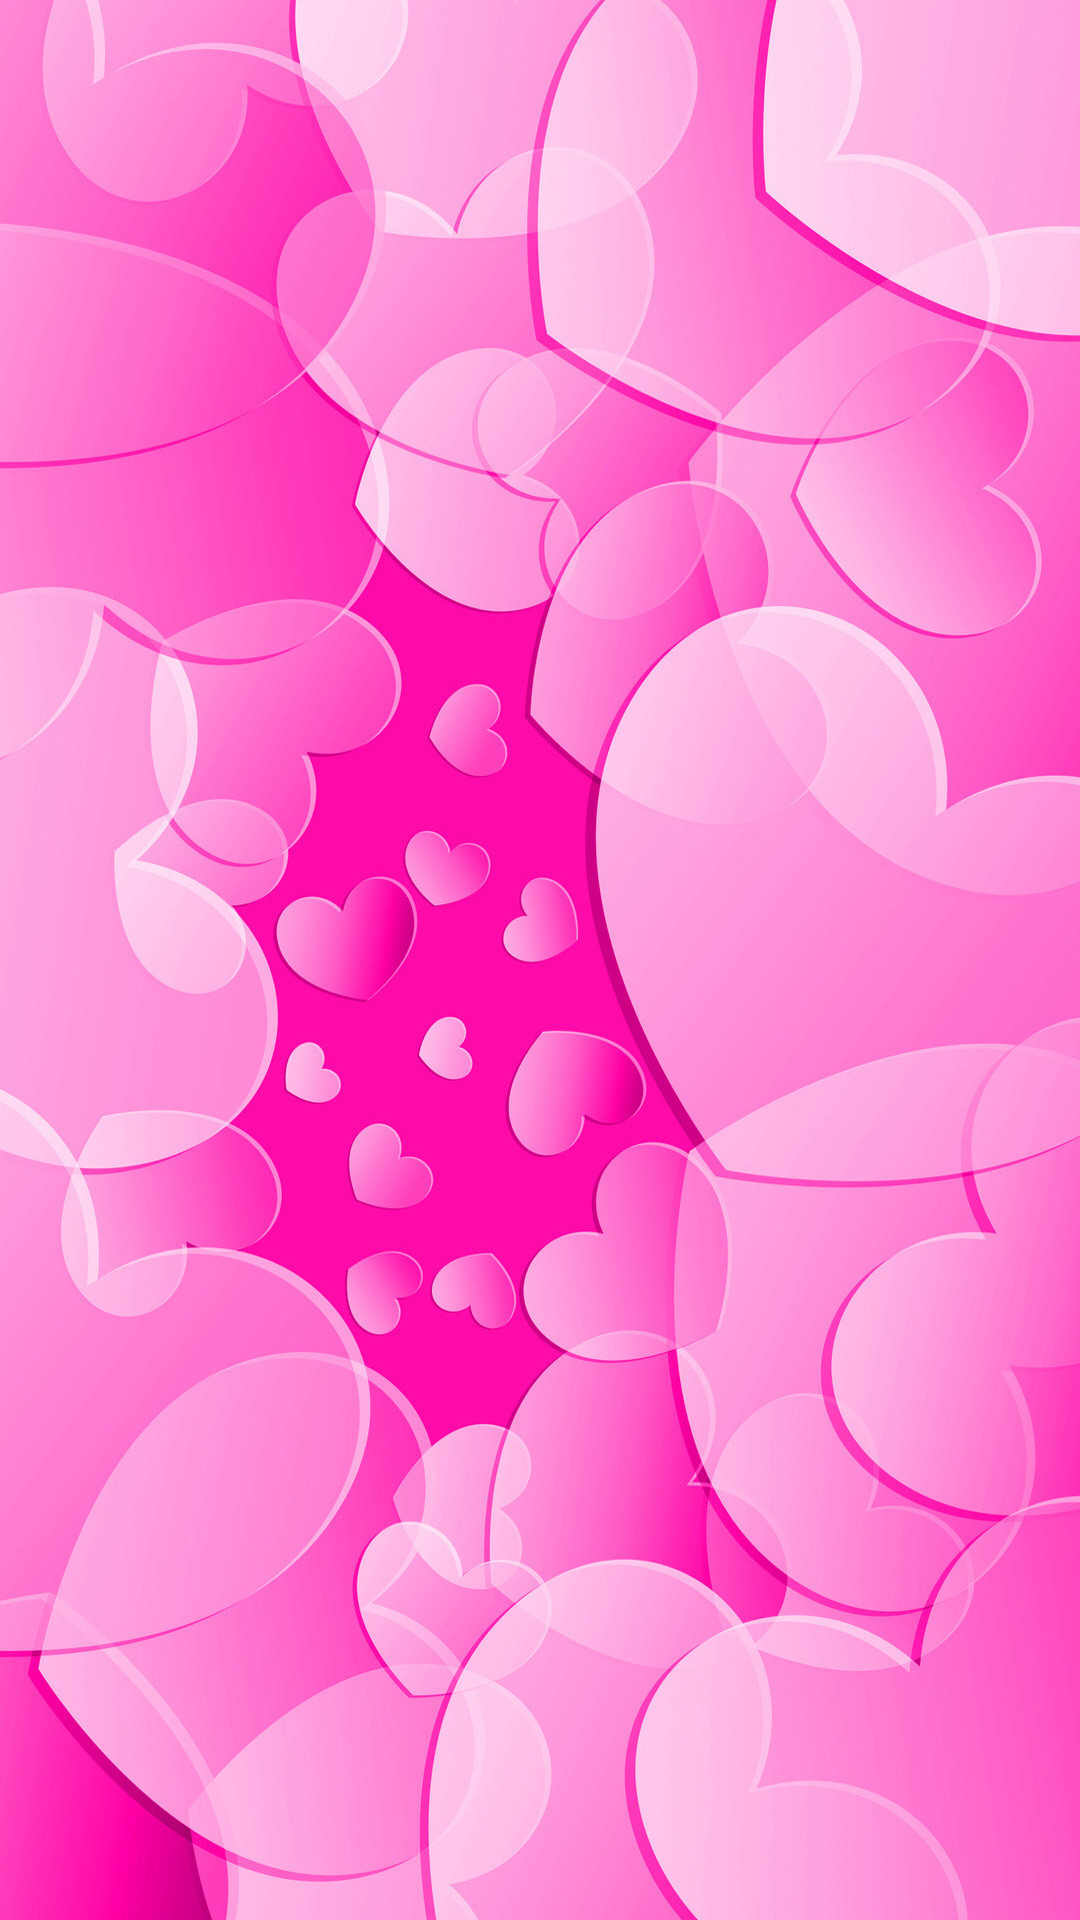 I'm really in a Pink mood this week. I'm Styling Pink Wallpapers for both  Home and Lock Screens today. They are both full of hearts, is love in the  air?